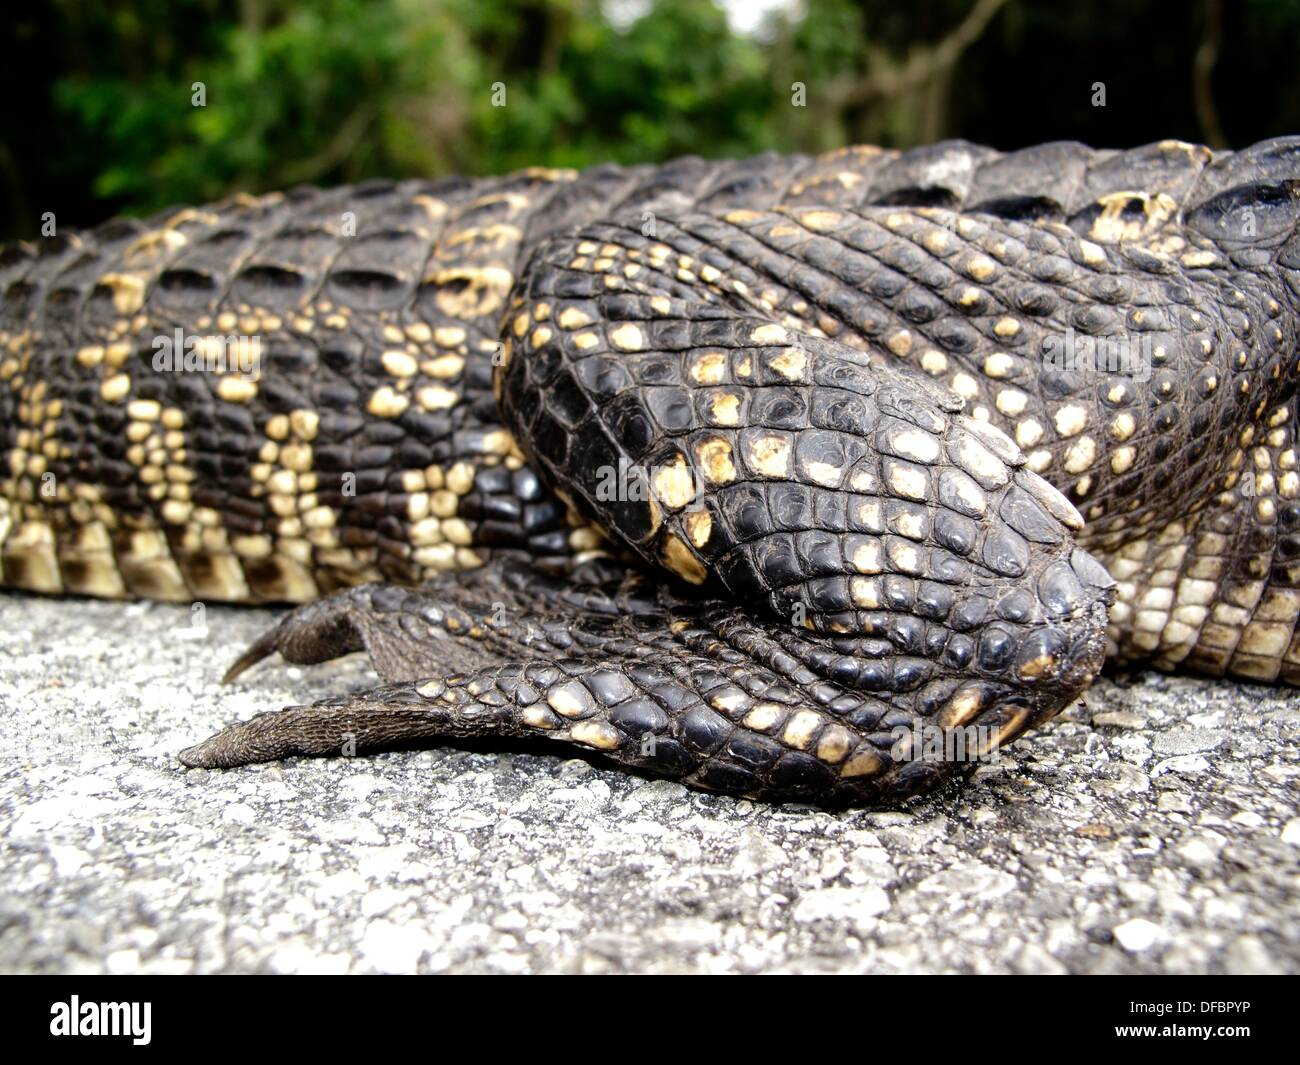 An alligator is a crocodilian in the genus Alligator of the family Alligatoridae. There are two extant alligator species: the - Stock Image